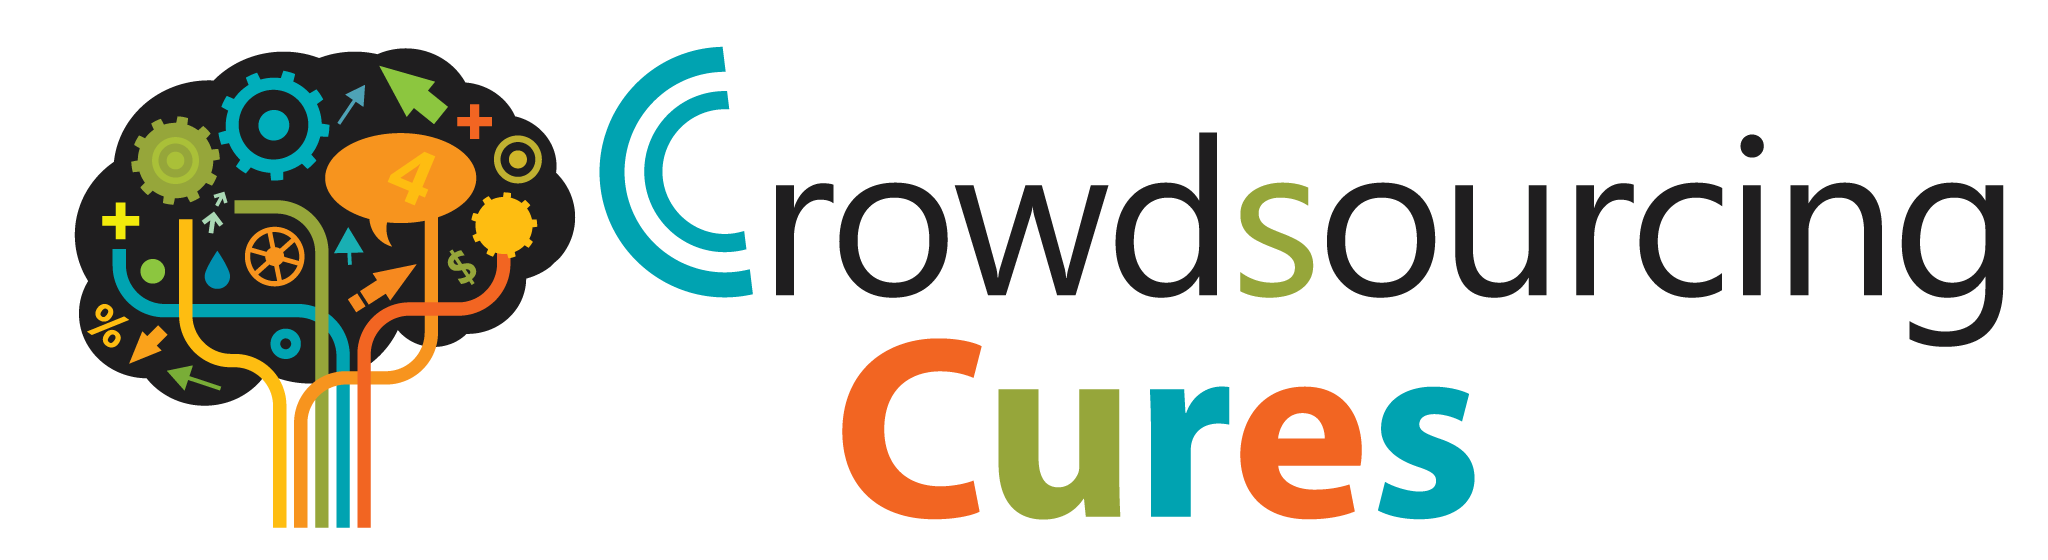 Crowdsourcing Cures